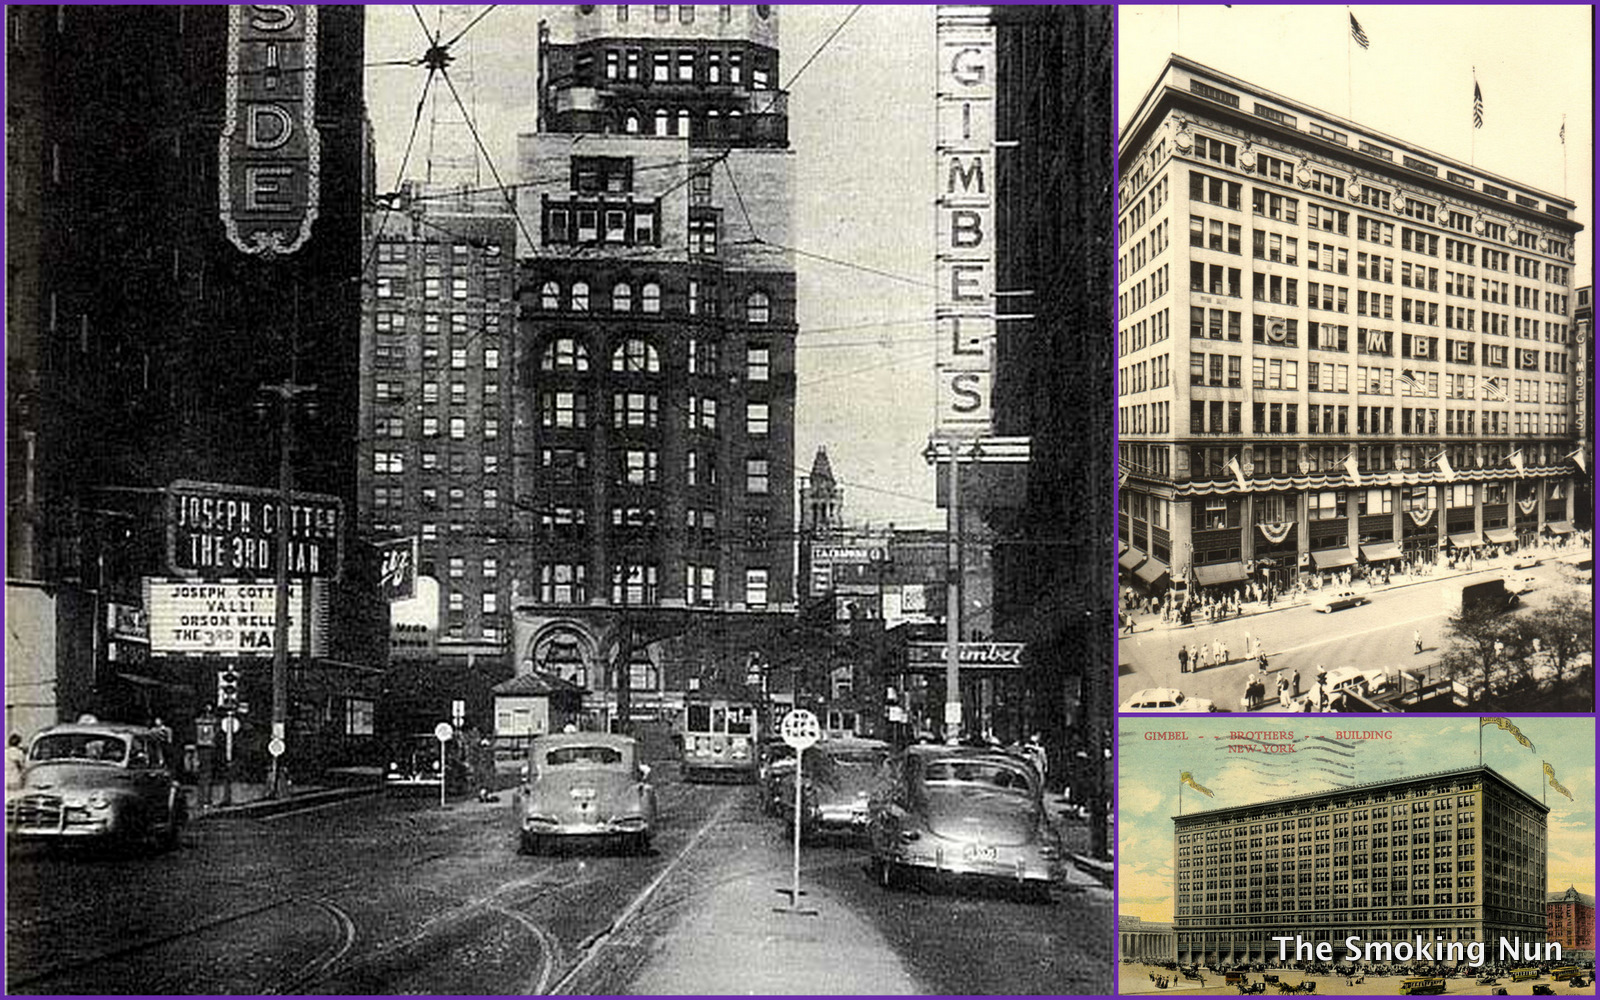 NYC Vintage NYC Vintage Image Of The Day Gimbels Department Store 1600x1000